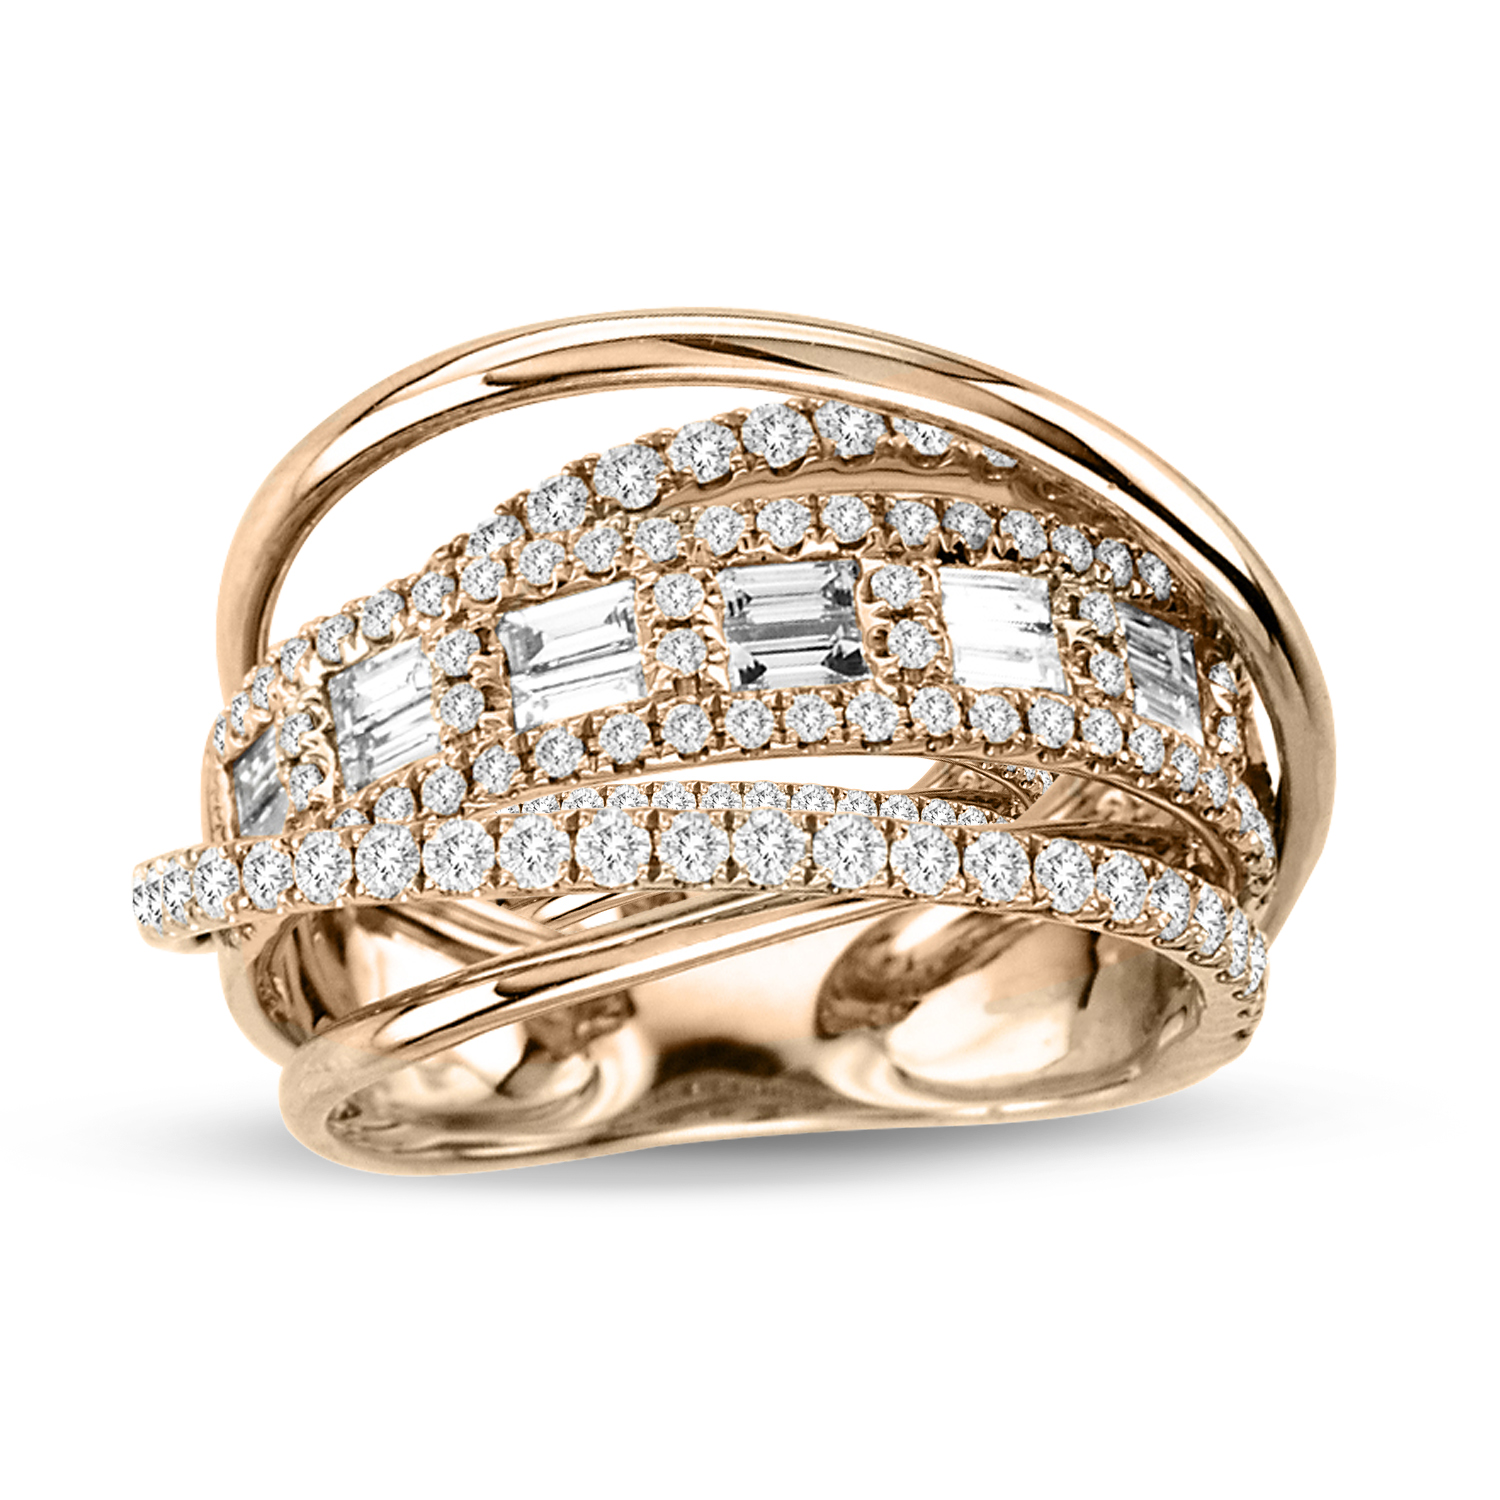 View 1.06cttw Diamond Fashion Ring in 18k Two Tone Rose and White Gold